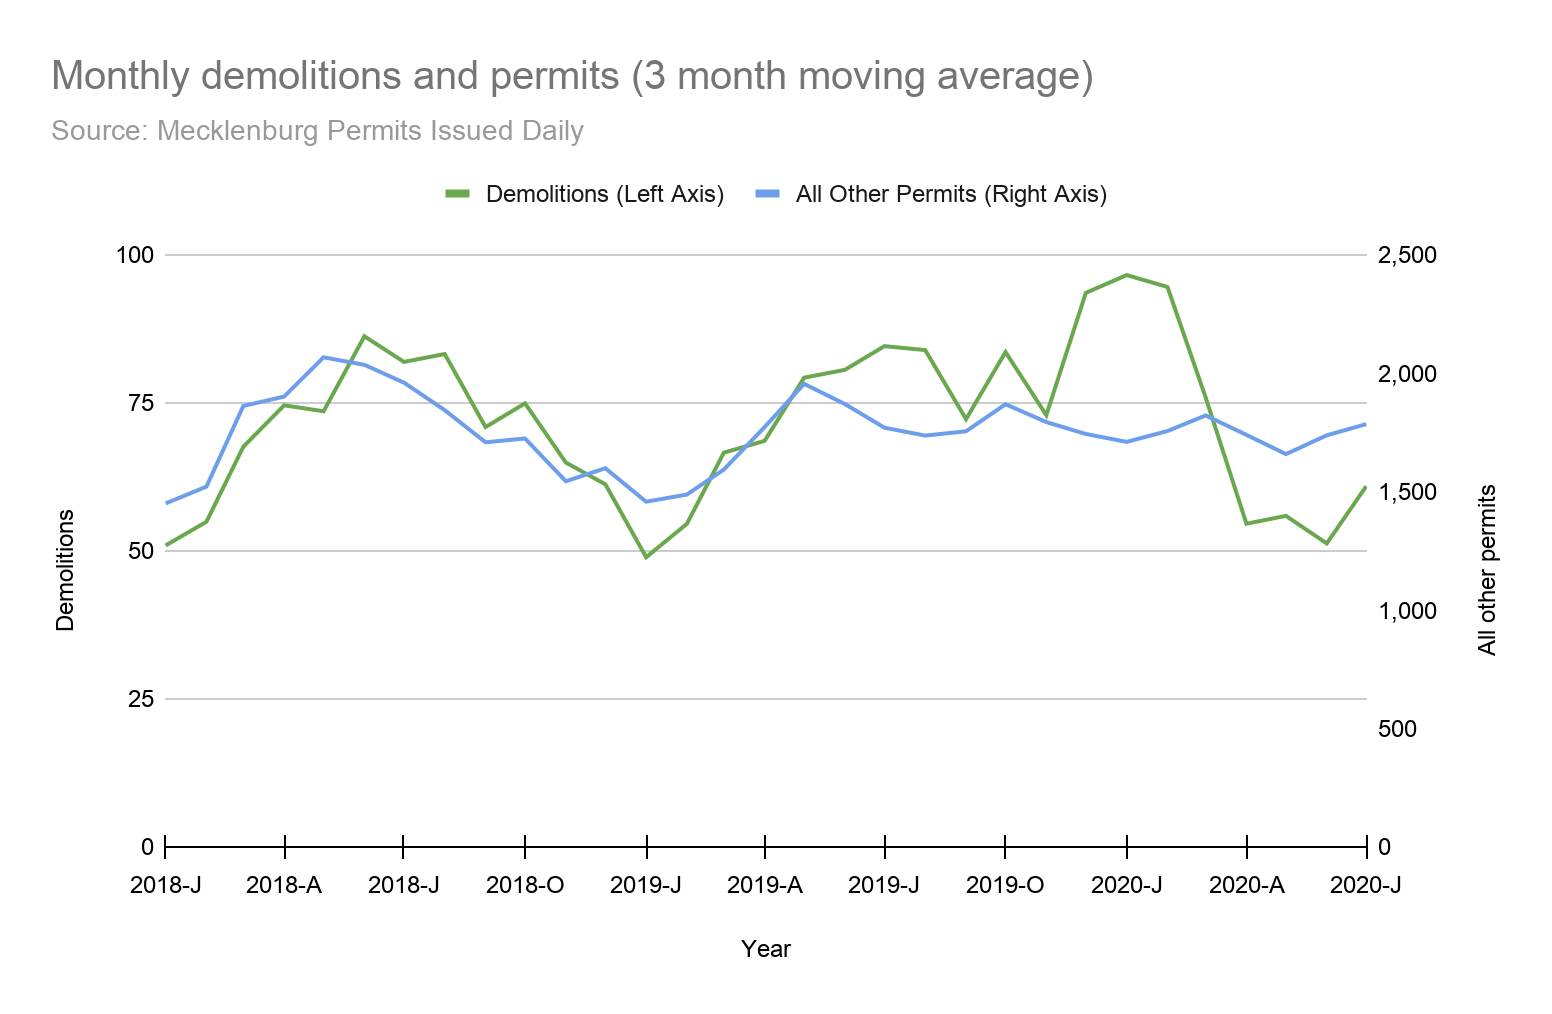 A graph of the monthly demolitions and permits (with a three month moving average) from January 2018 to July 2020